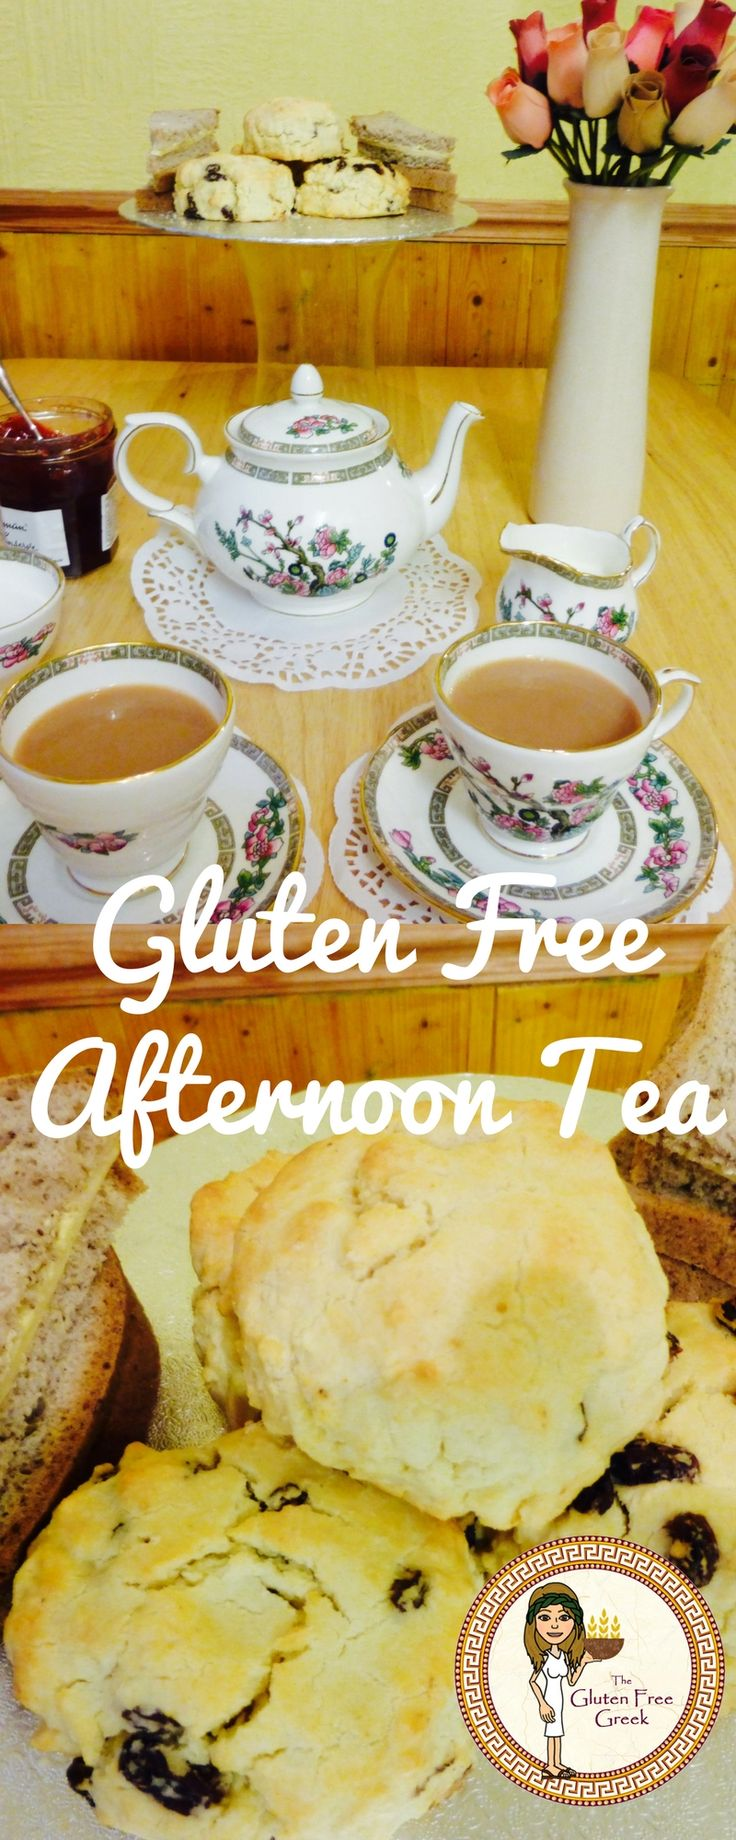 Mothers Day afternoon tea Gluten Free Scone Recipe! Check it out on the blog!